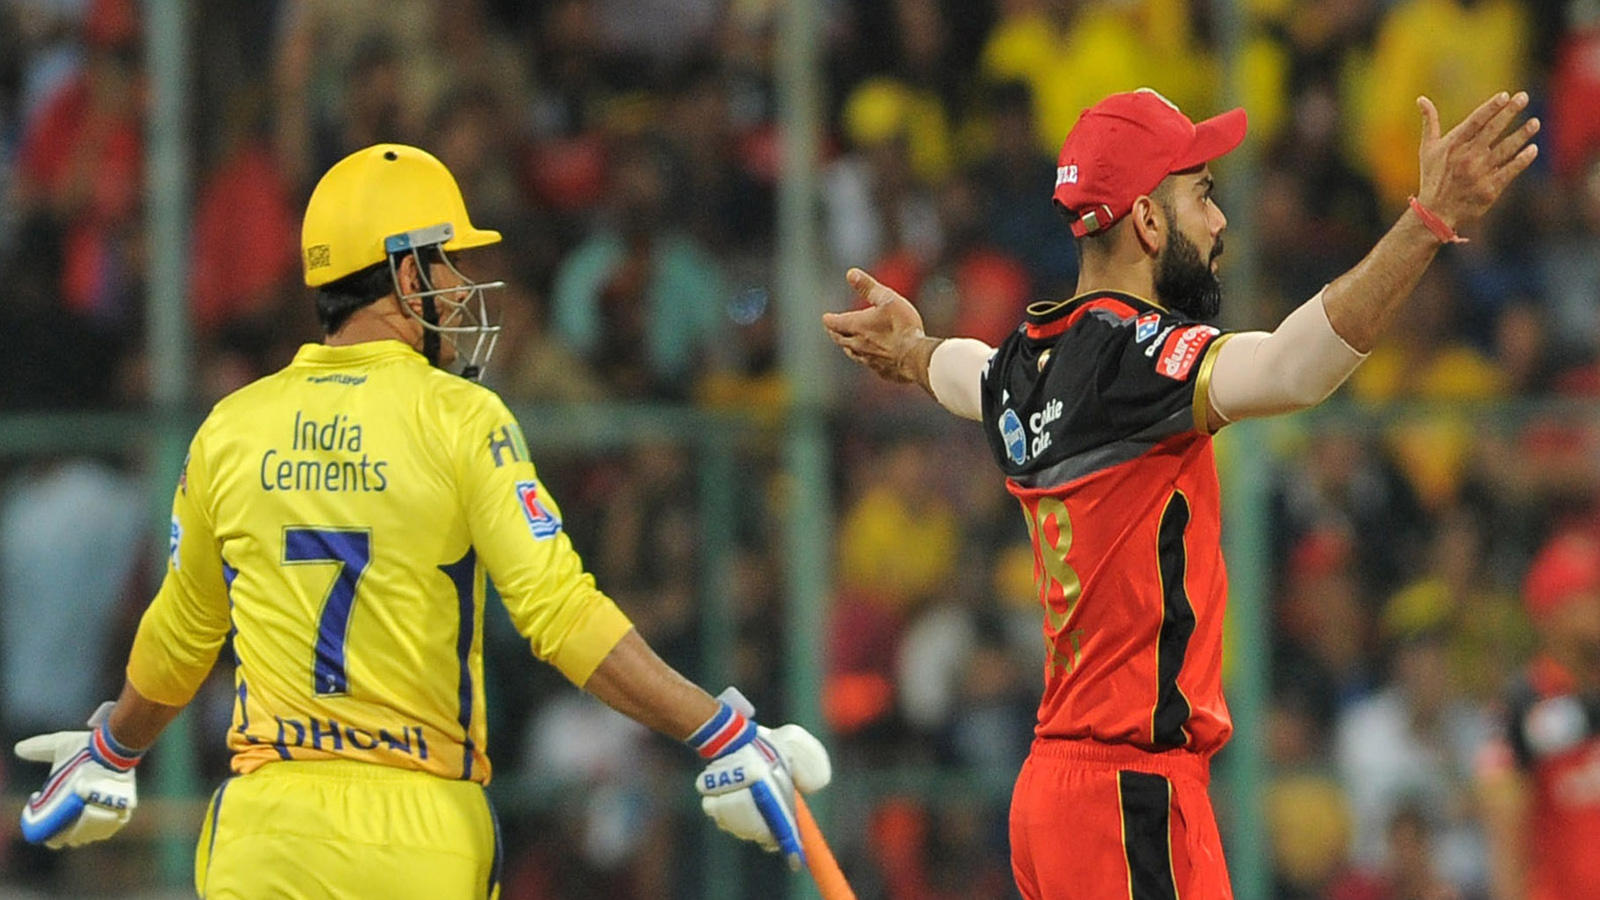 ipl-13-opening-week-viewership-sees-new-high-15-growth-in-viewing-minutes